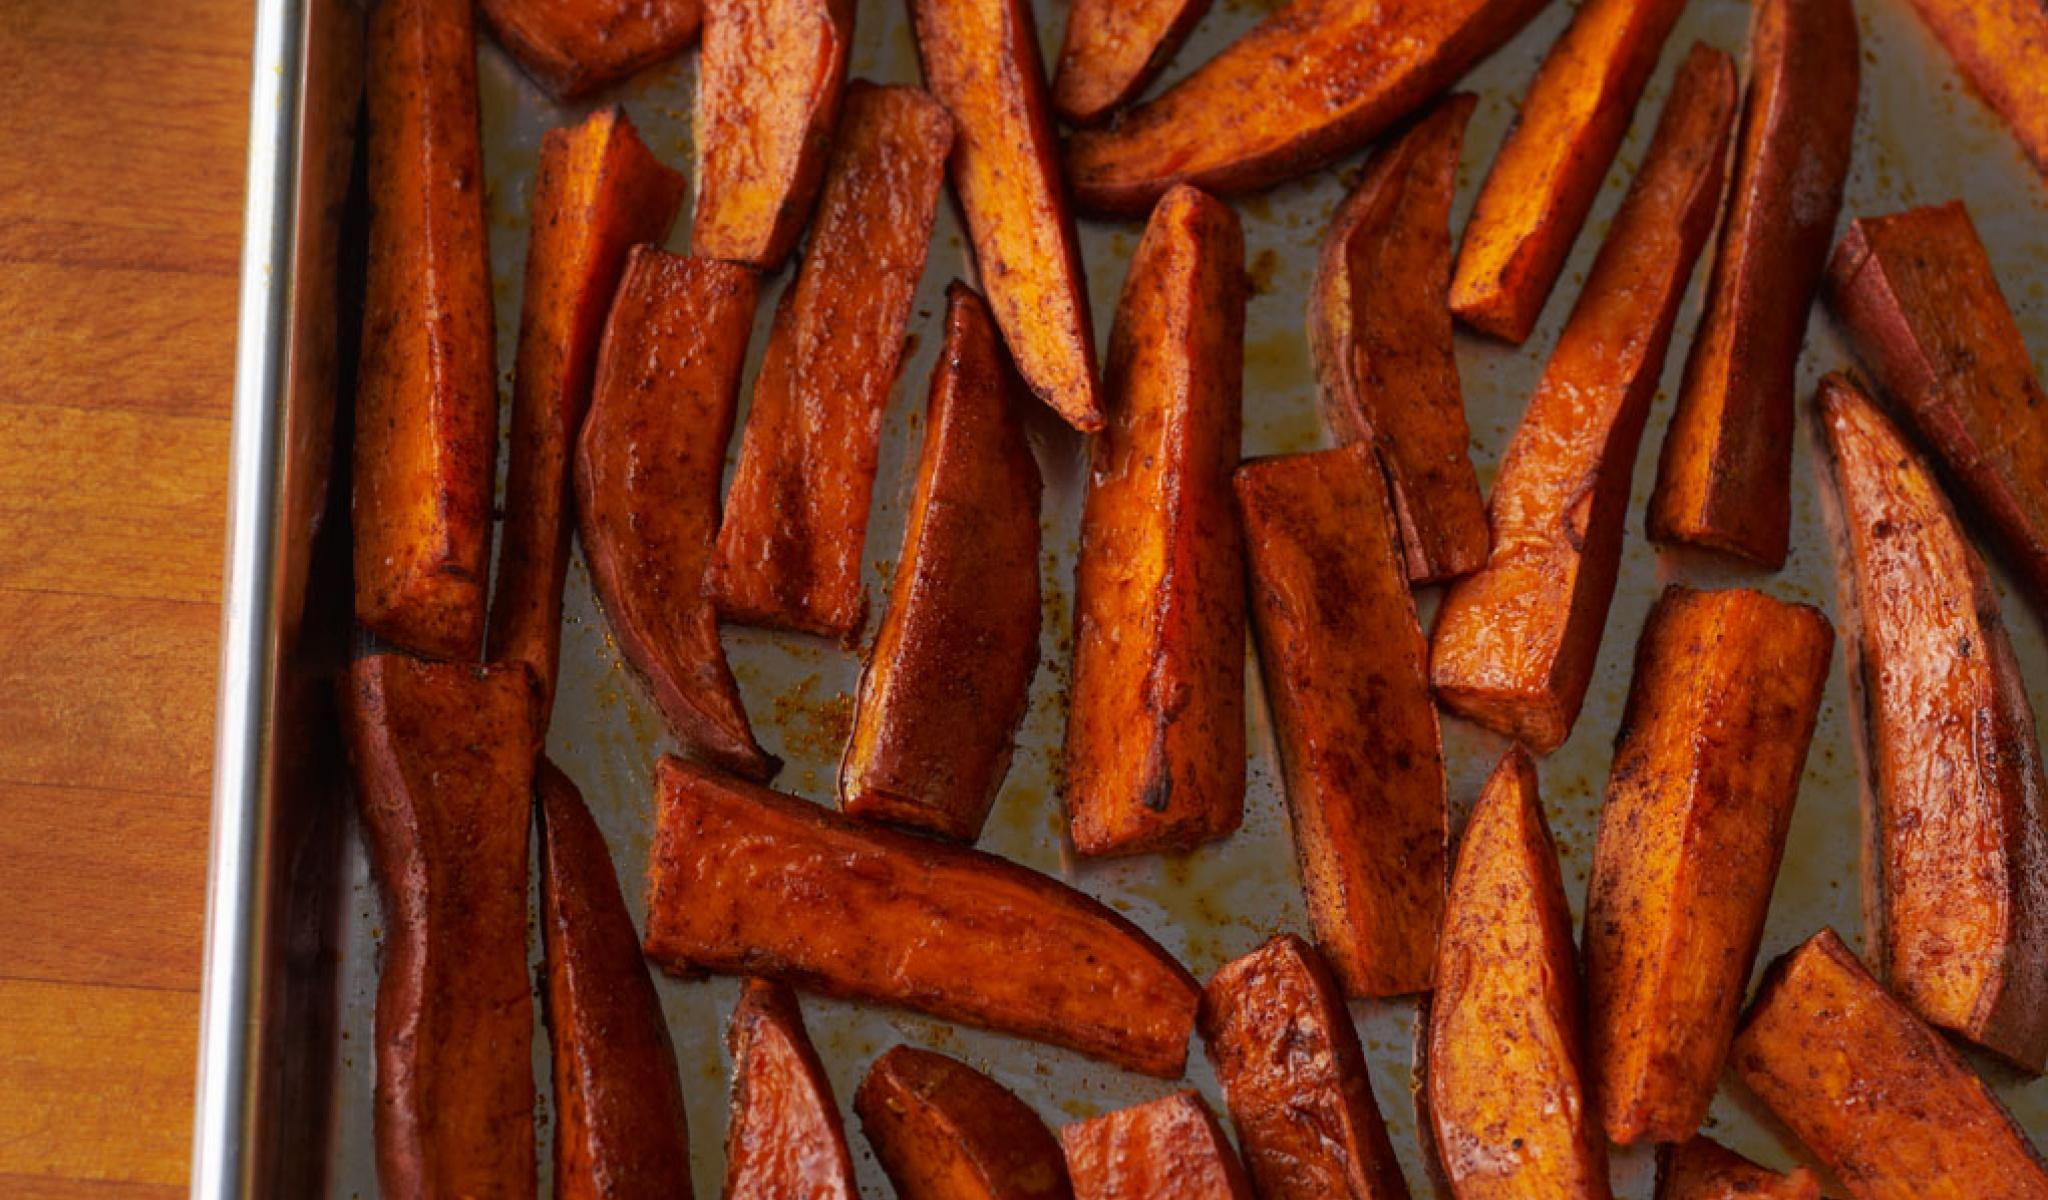 Sweet Potato Fries      Fries that are good for you - baked with healthy oils